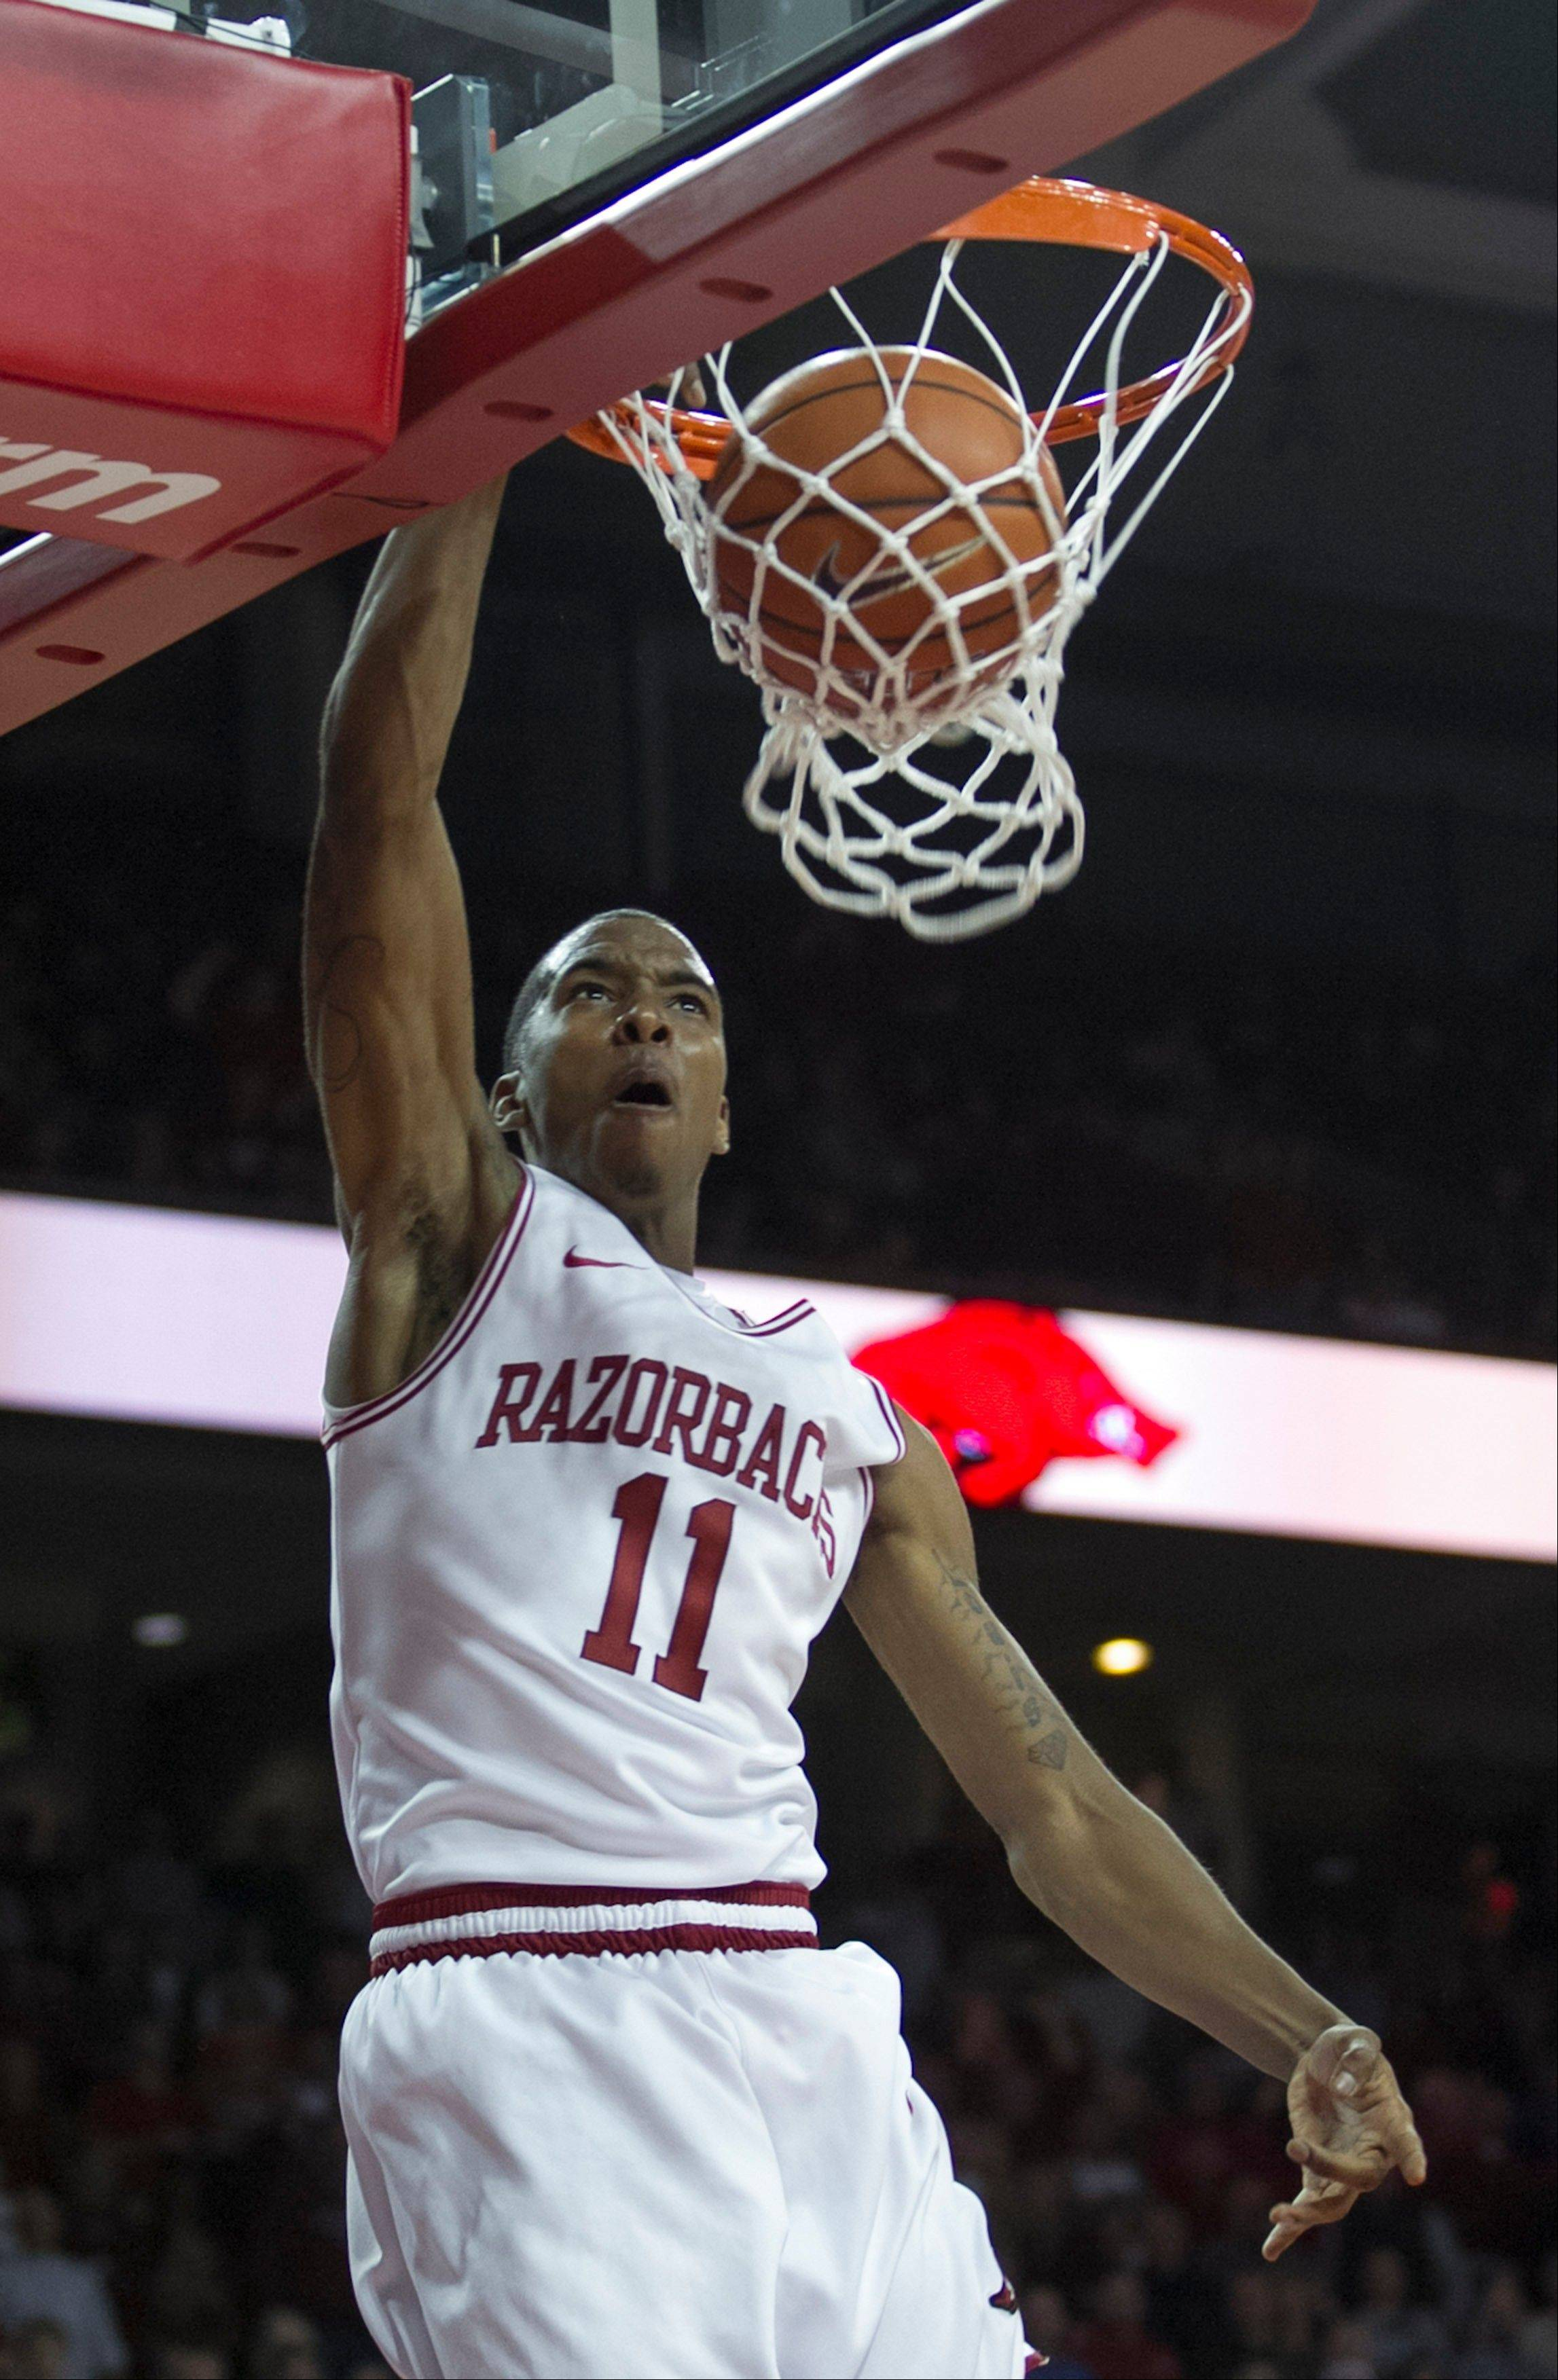 Arkansas' BJ Young (11) dunks during the second half an NCAA college basketball game against No. 2 Florida in Fayetteville, Ark., Tuesday Feb. 5, 2013. Arkansas won 80-69. (AP Photo/Gareth Patterson)